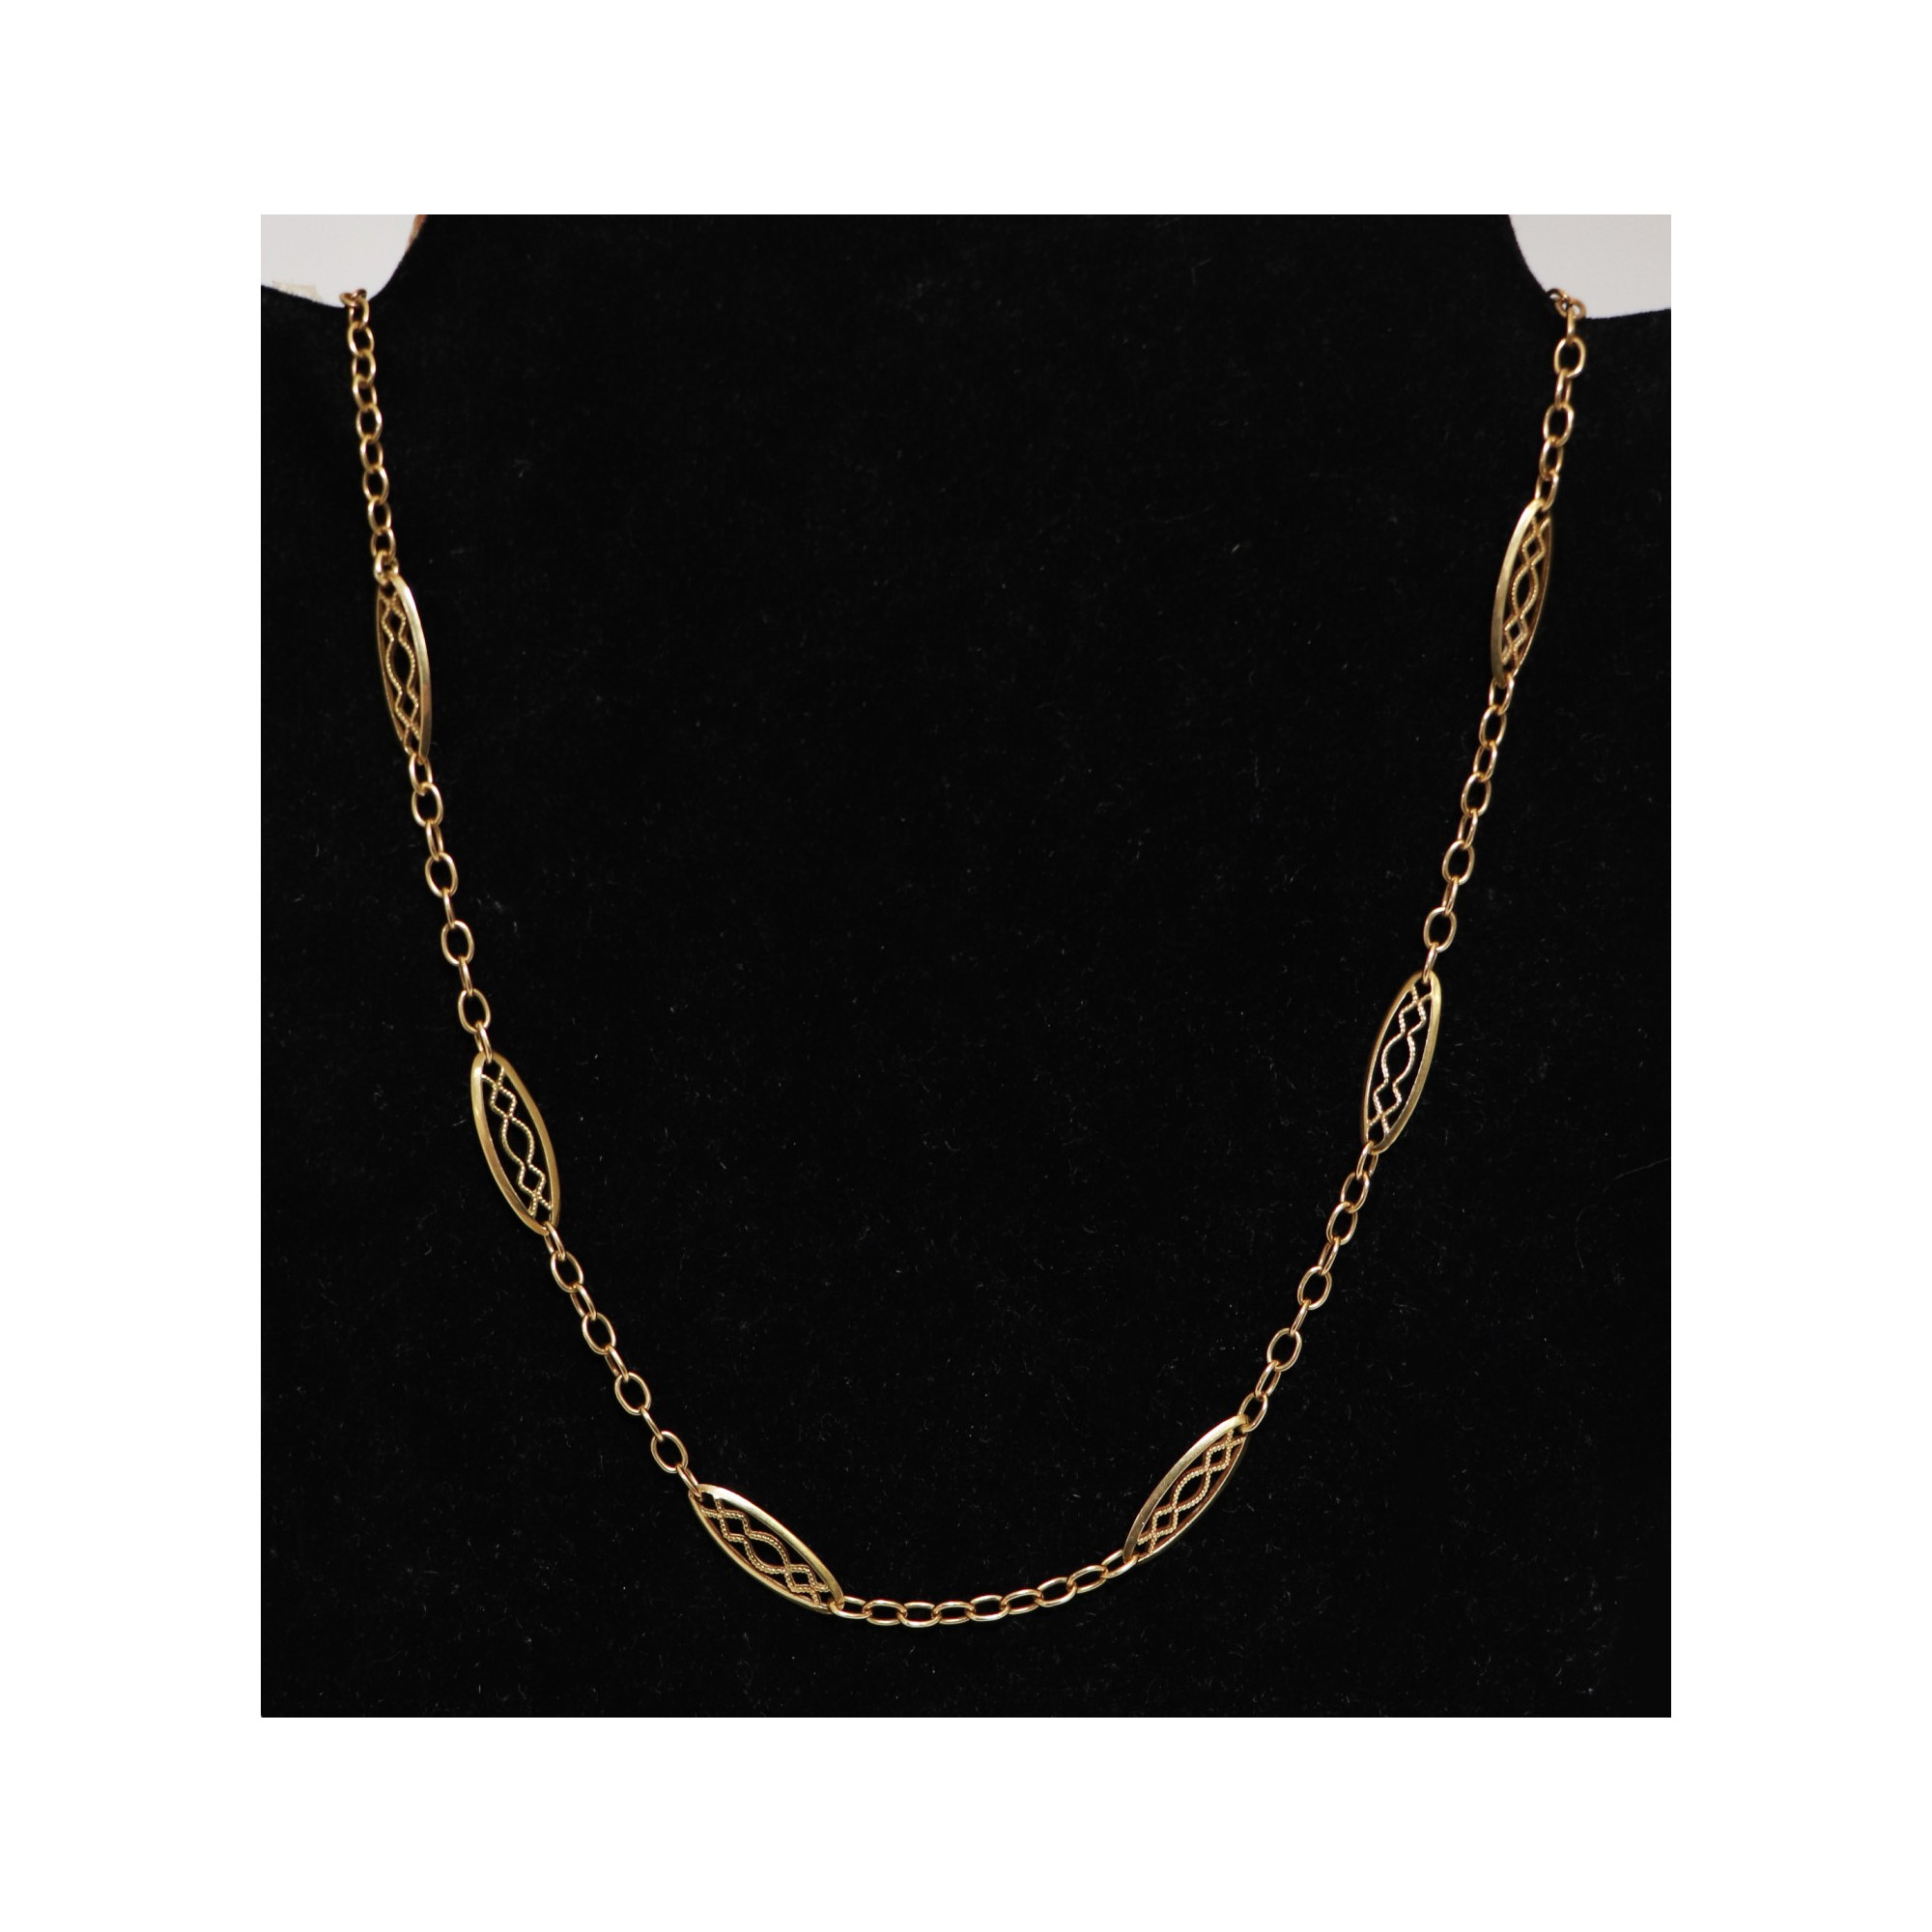 Necklace in 18K Gold 7 GRA